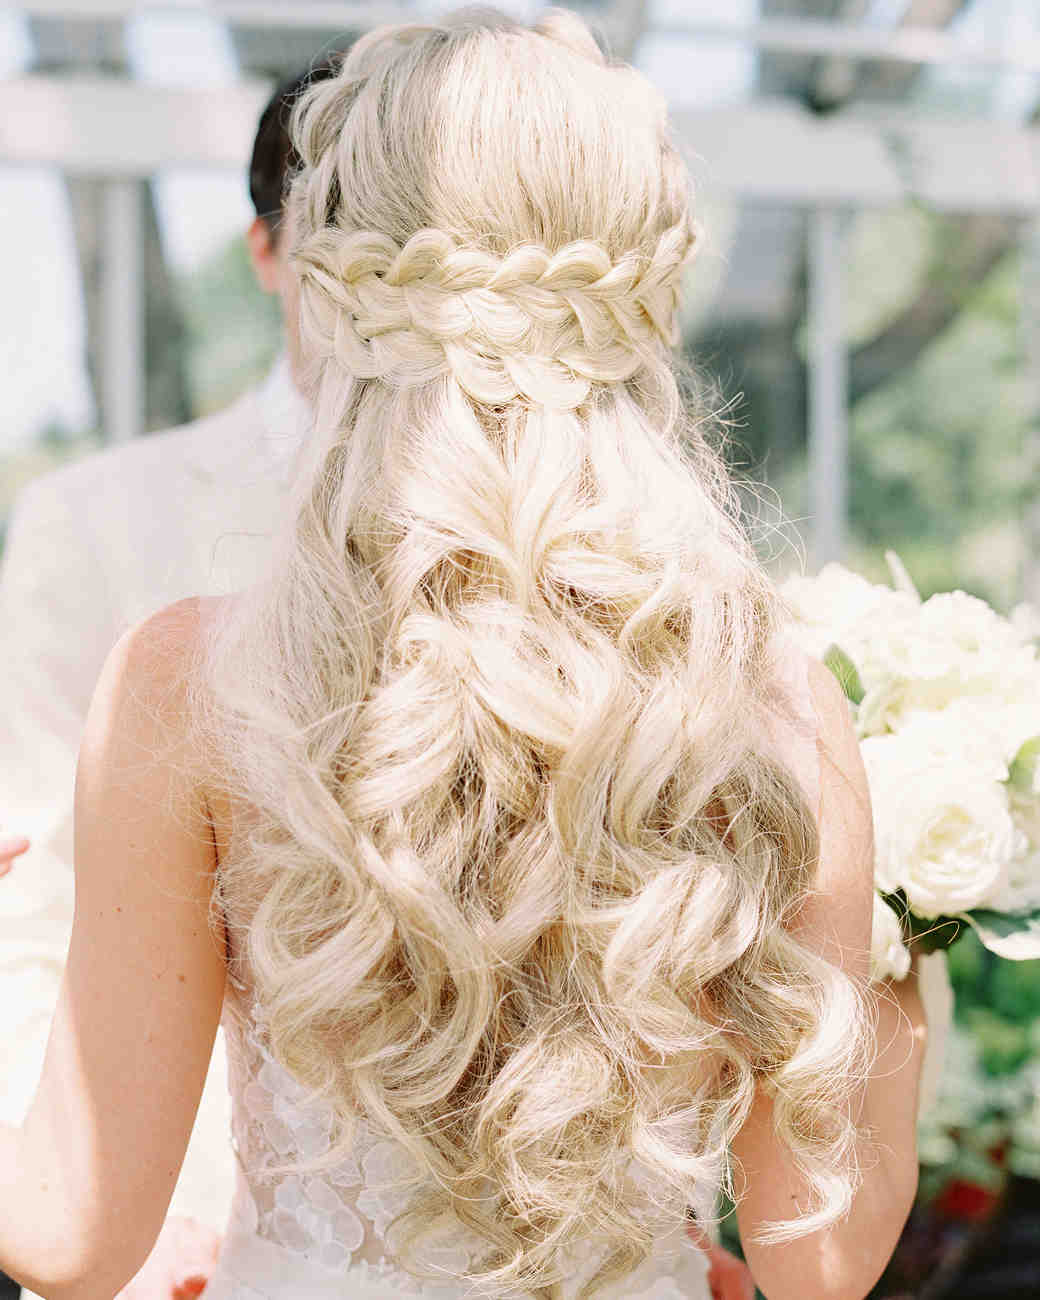 Wedding Hairstyles For Long Hair: 28 Half-Up, Half-Down Wedding Hairstyles We Love